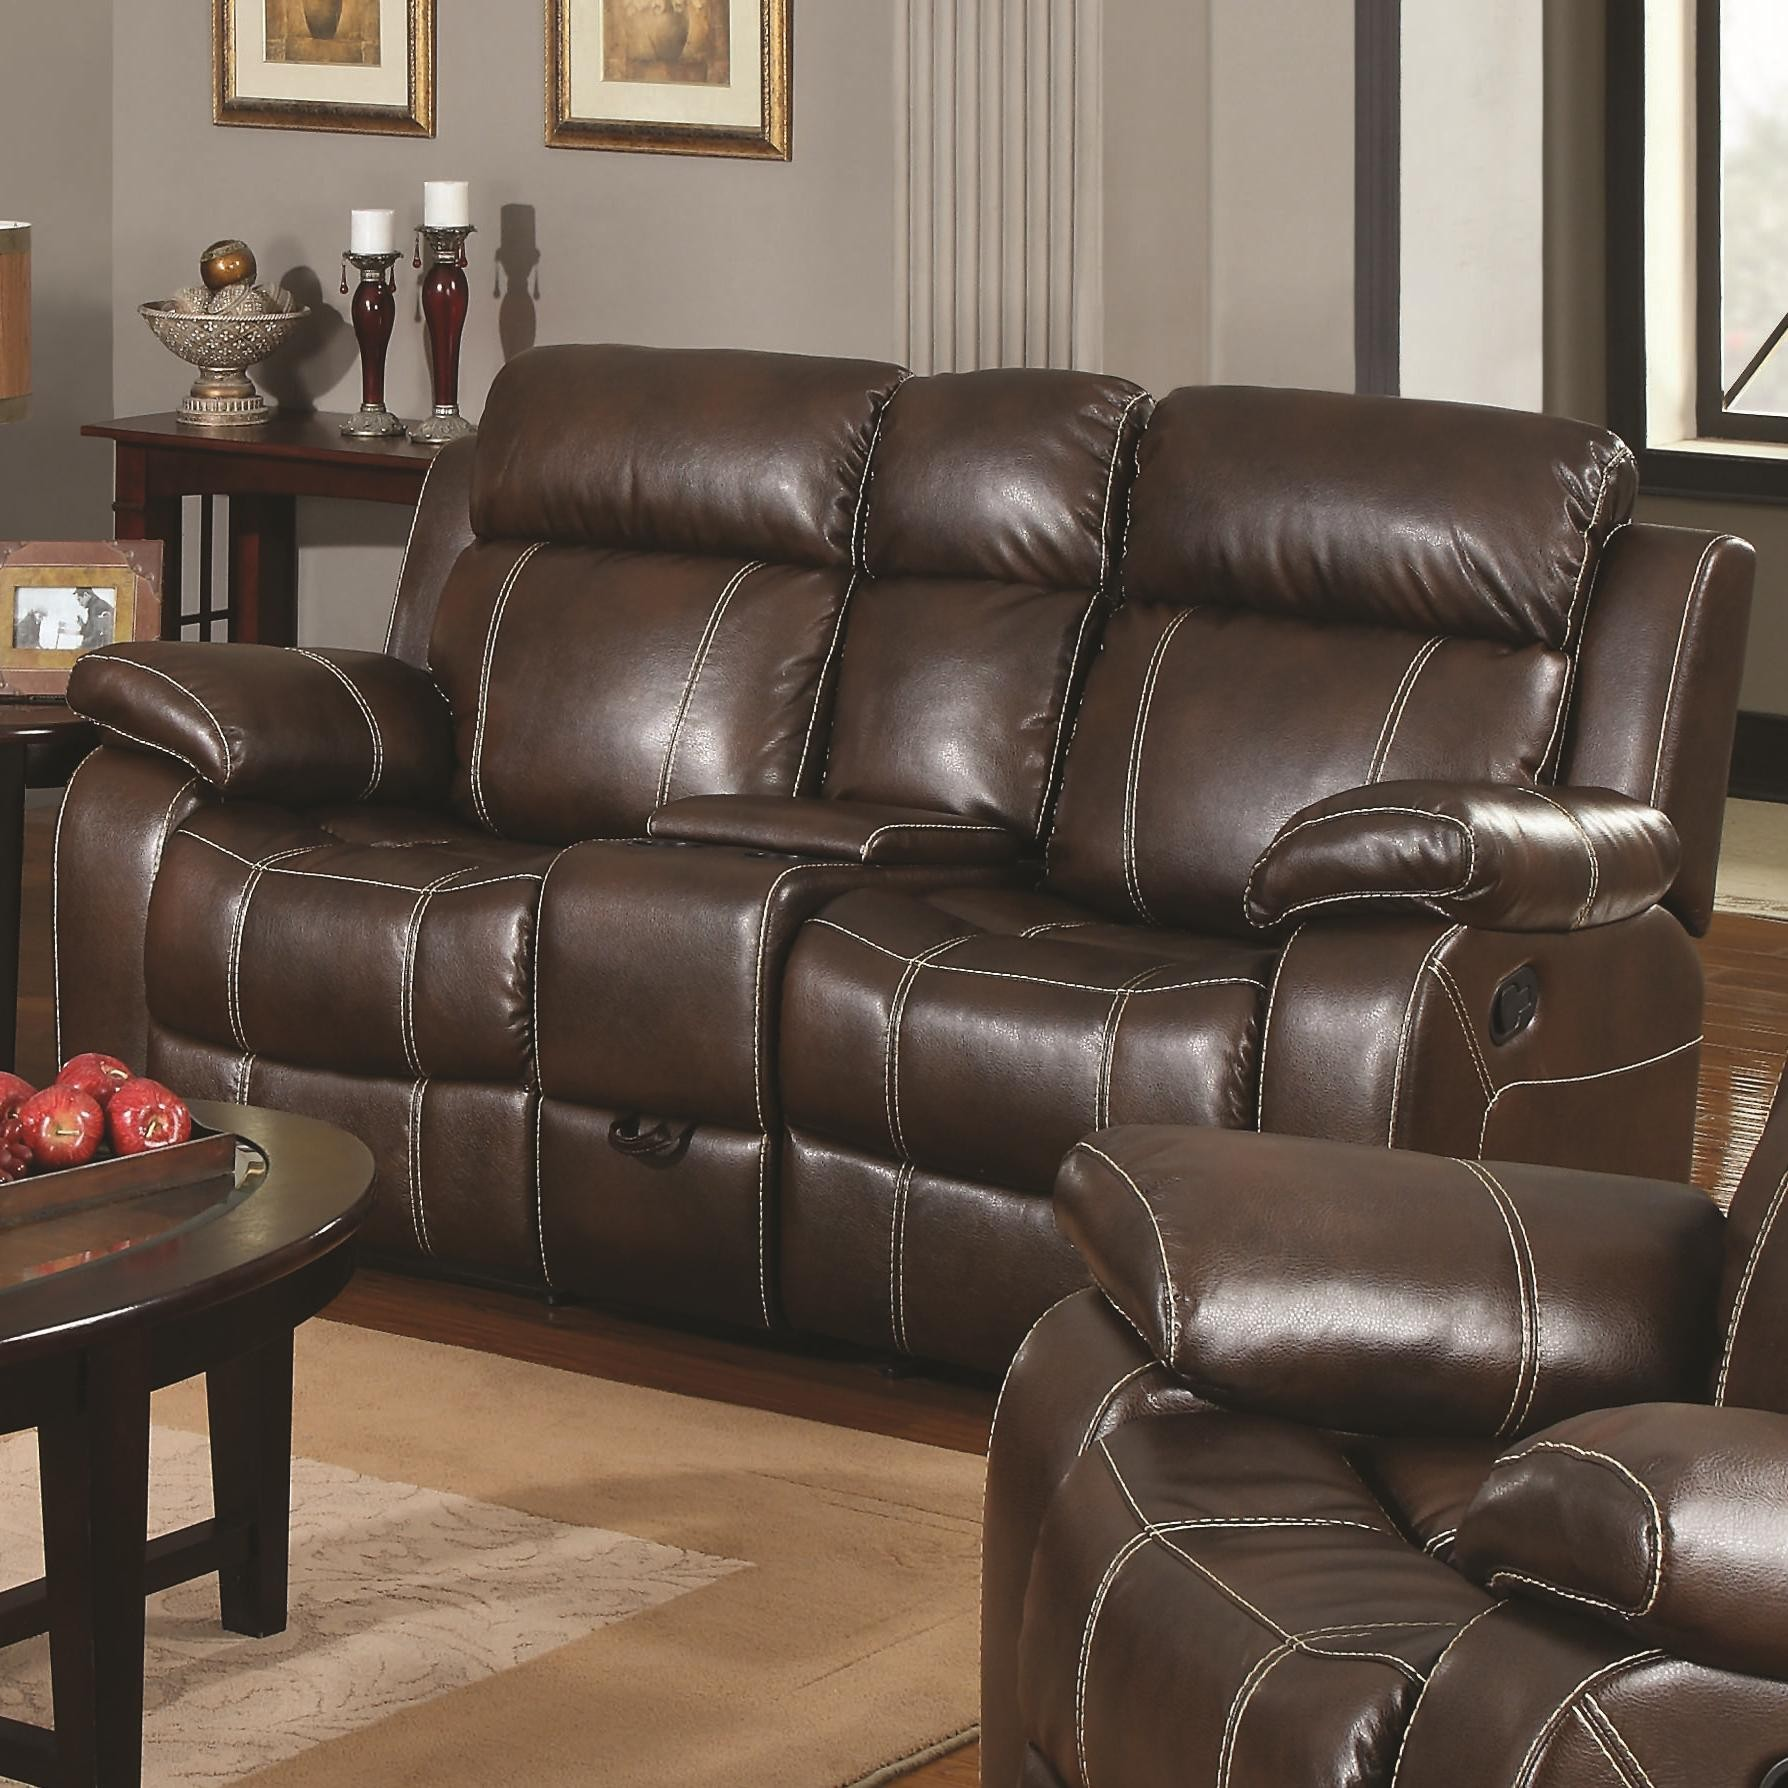 Myleene Collection 603021 Brown Reclining Sofa u0026 Loveseat Set & Myleene Collection 603021 Brown Leather Reclining Sofa u0026 Loveseat Set islam-shia.org